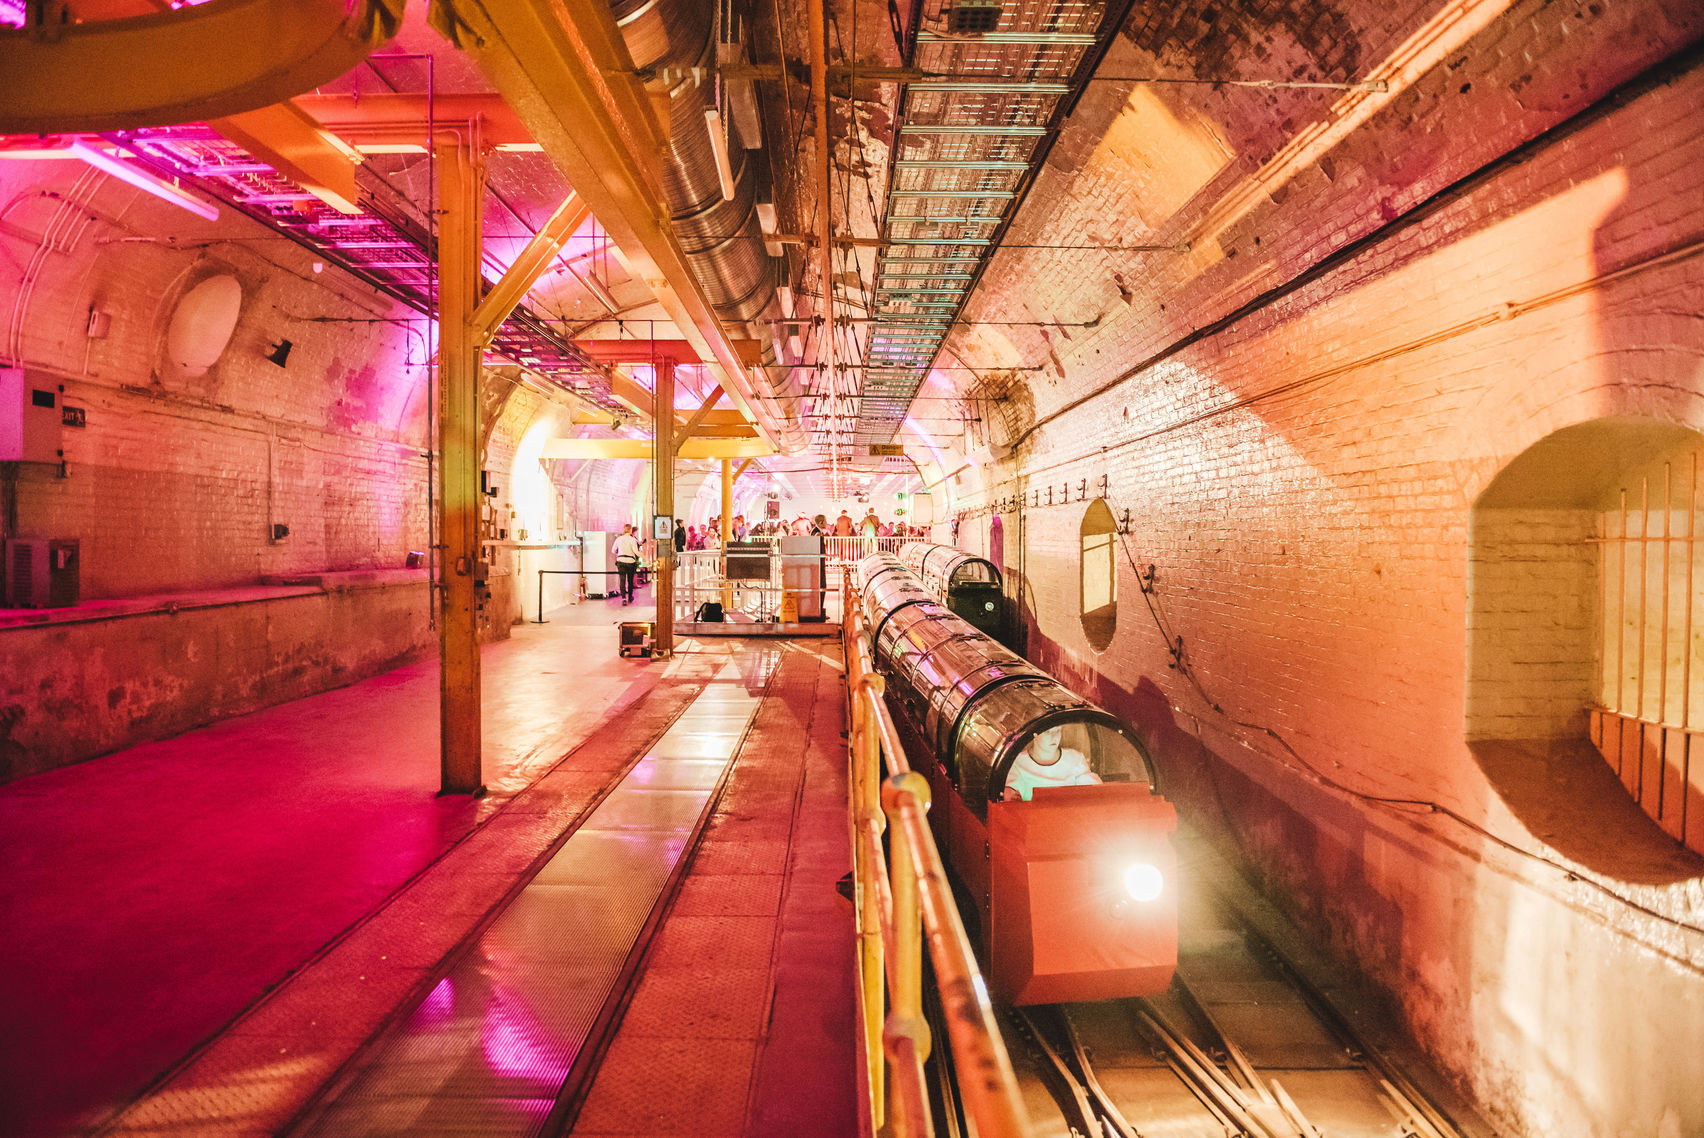 An unusual party venue London, the mail rail is an underground industrial venue with exposed pipes, bricks and archways. The venue is lit up with pink and orange lightening and the mail rail takes pride of place on the right hand side.